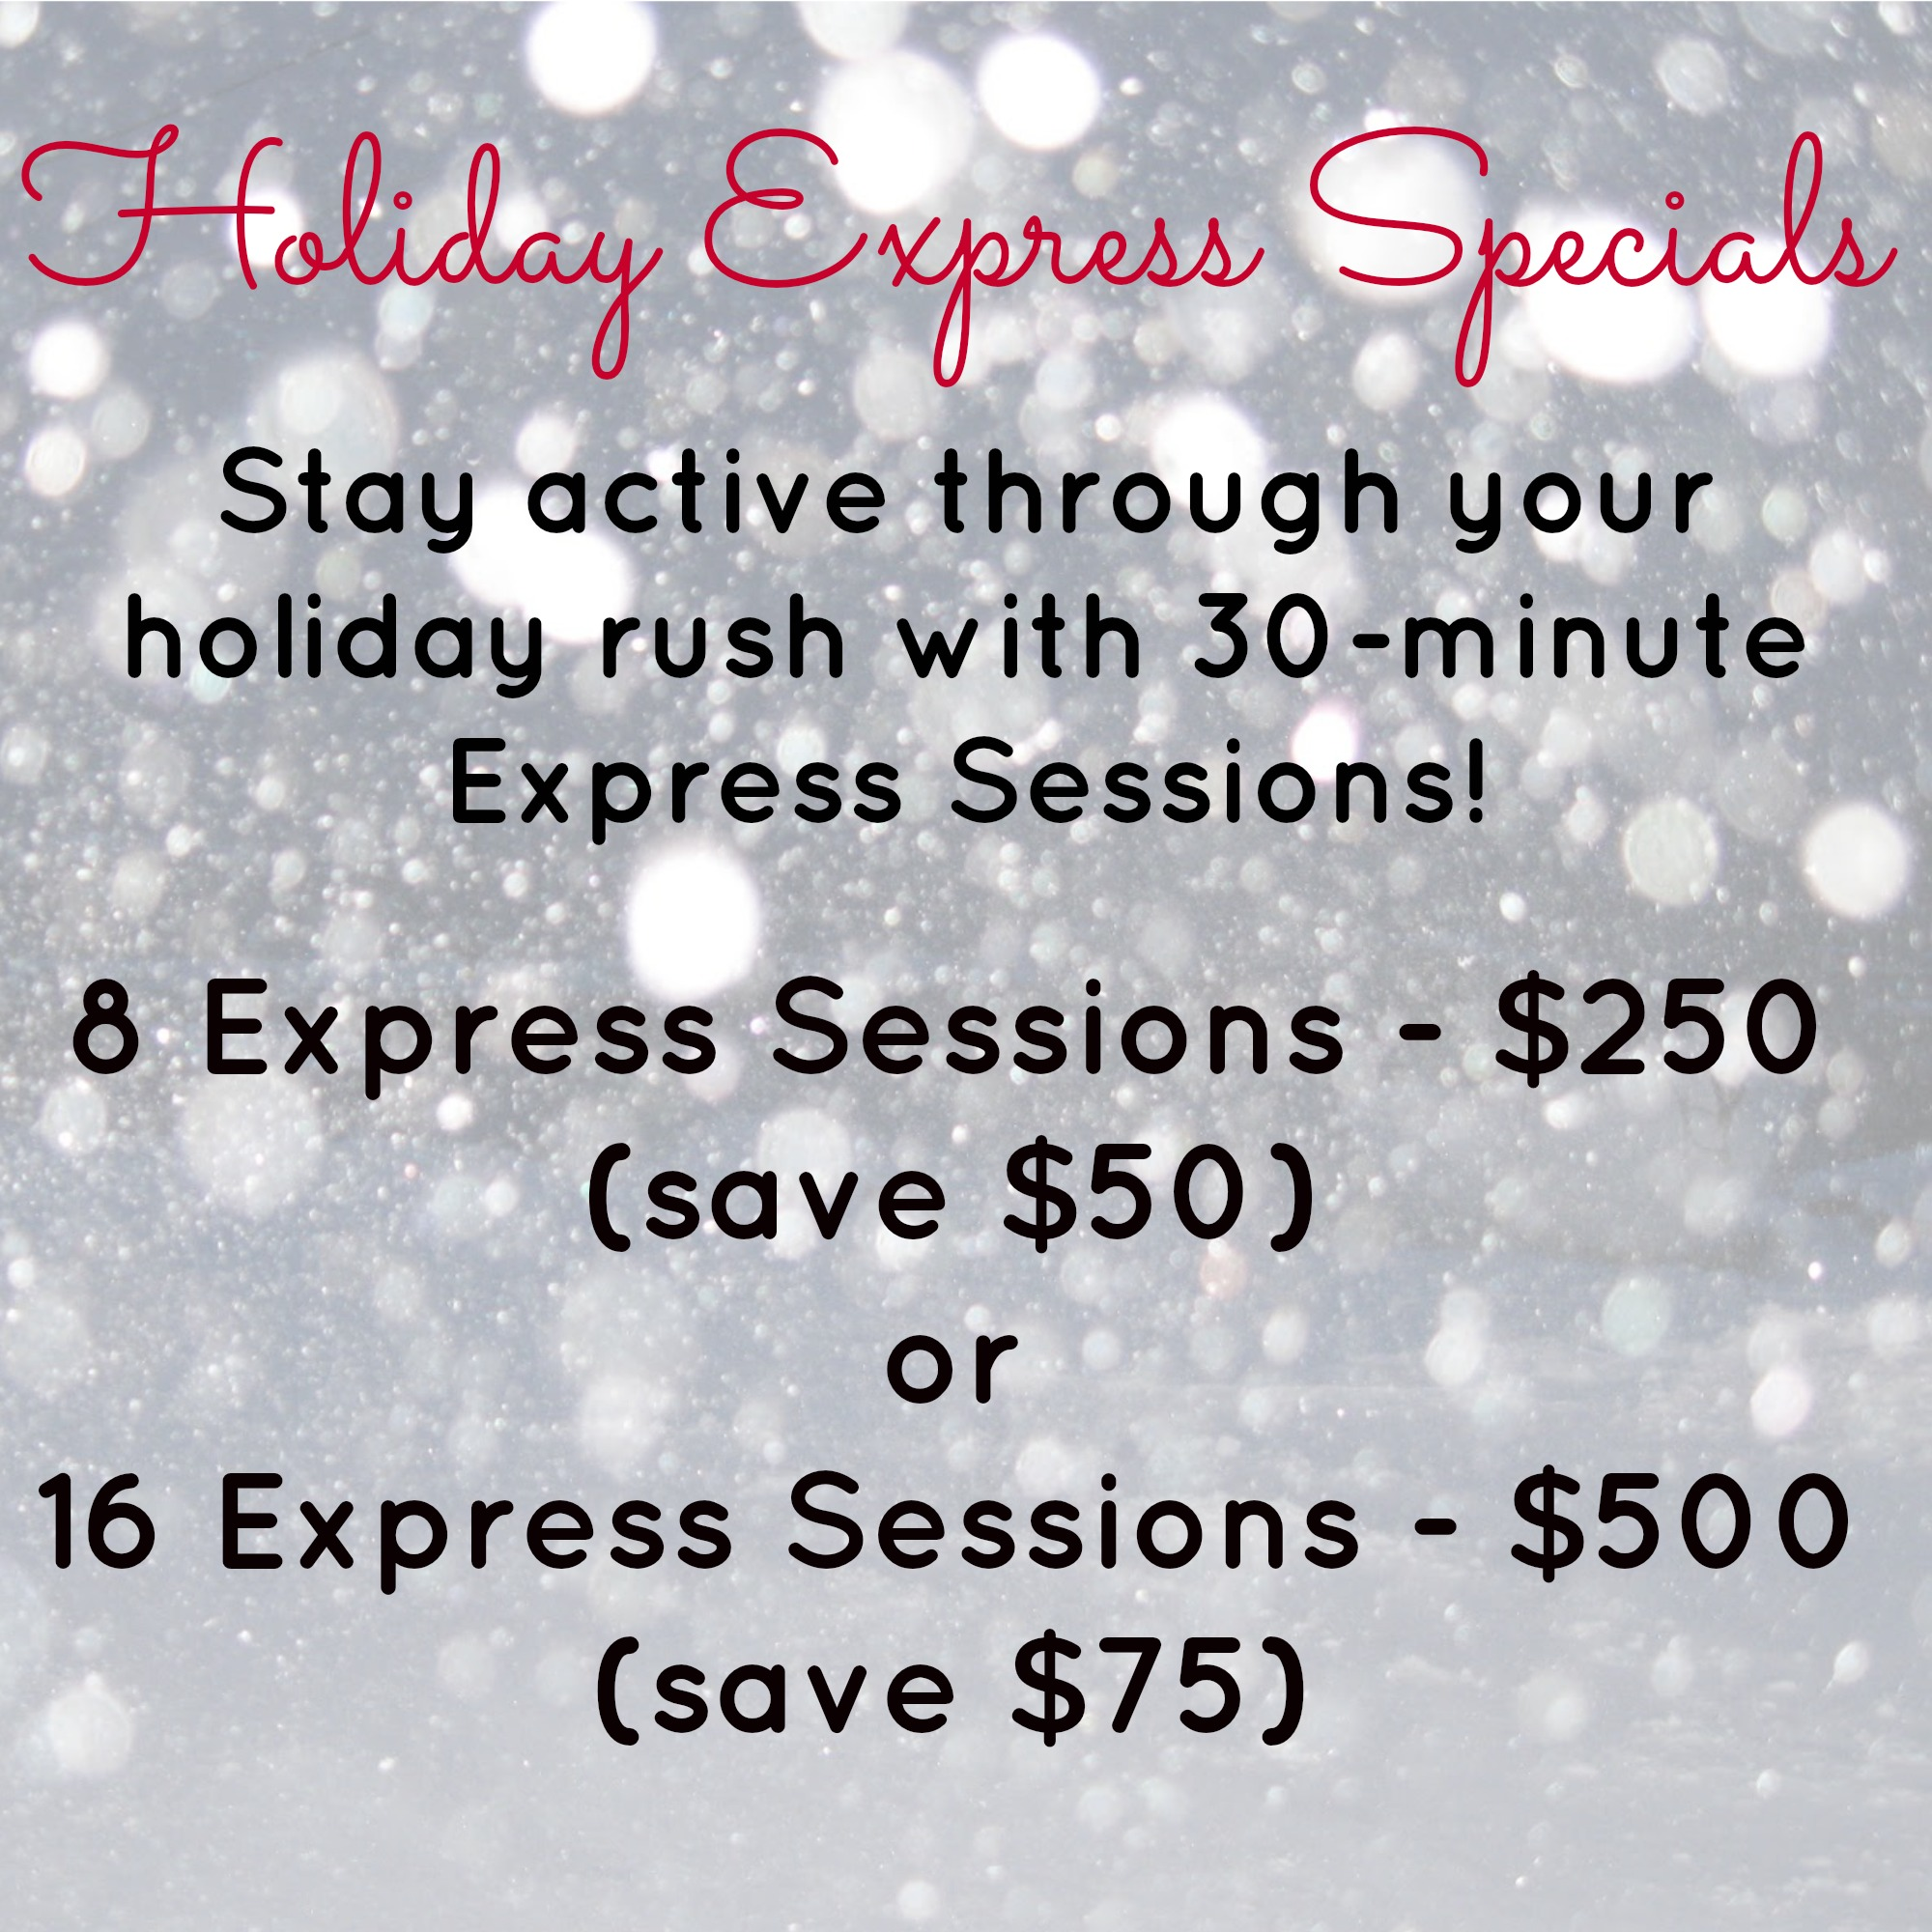 Holiday Express Specials